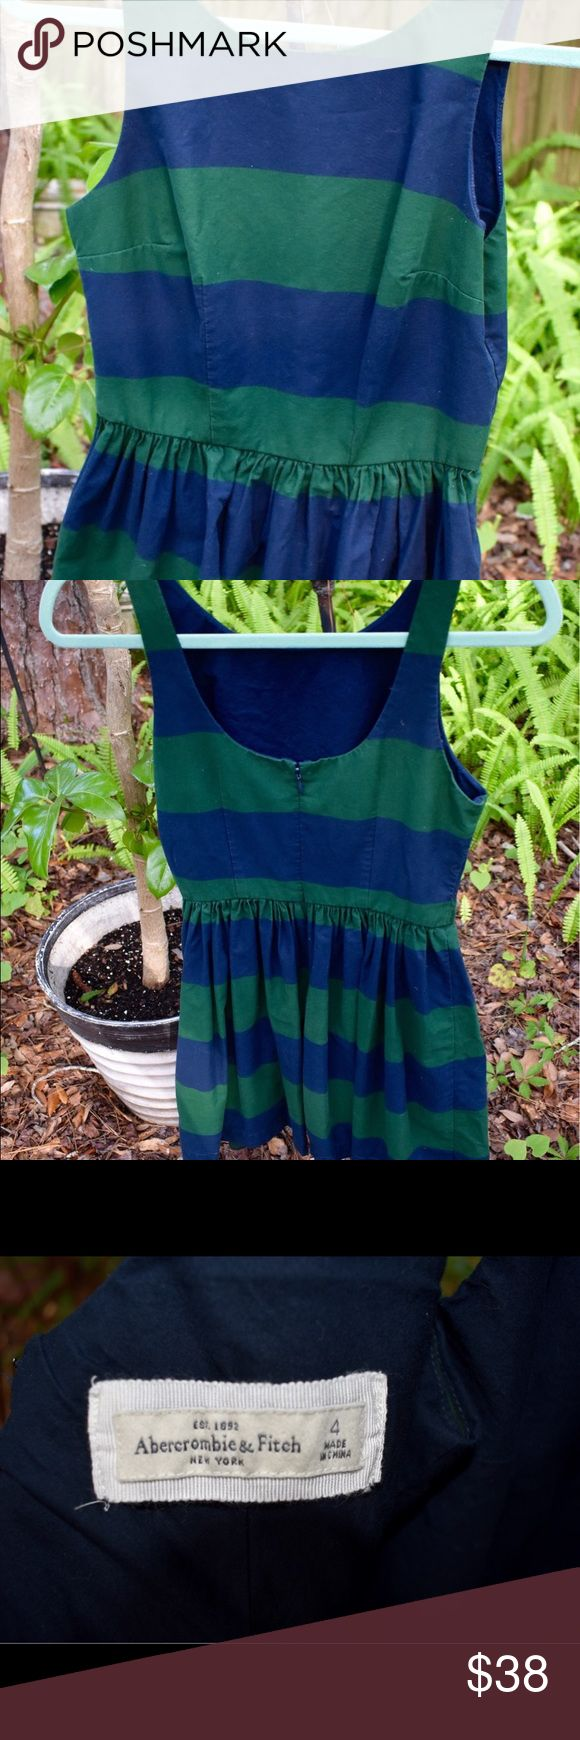 Abercrombie & Fitch striped mini dress size 4 Hunter green and navy blue striped sleeveless Abercrombie & Fitch mini dress. Fitted bodice with flared skirt. 100% cotton. Size 4. Length approximately 32 inches. Good to very good condition. Abercrombie & Fitch Dresses Mini